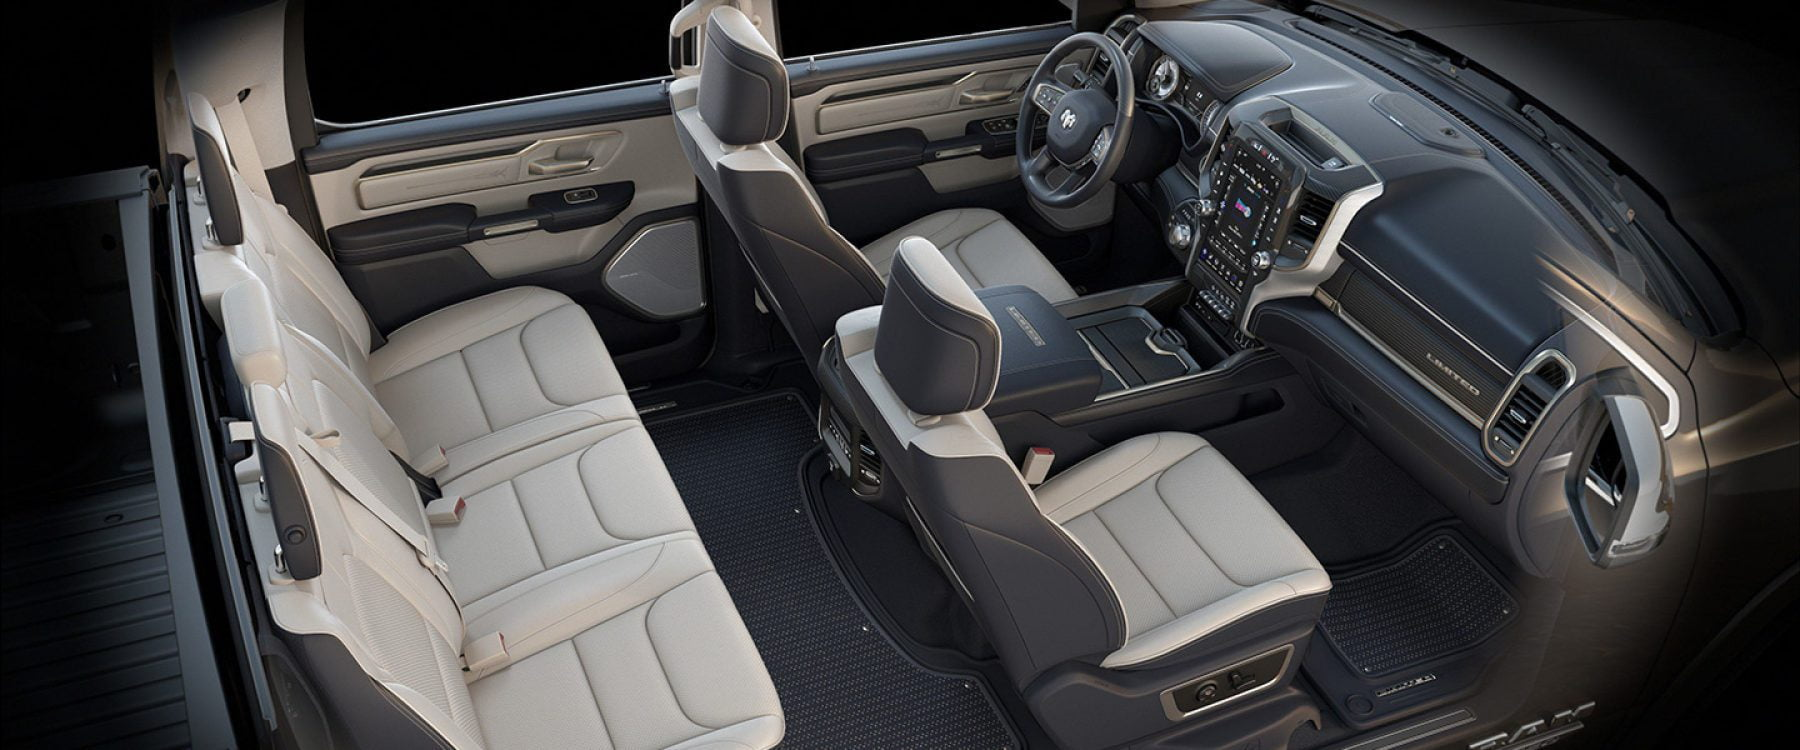 2019 Ram 1500 Interior Seats Limited Natura plus indico light frost beige